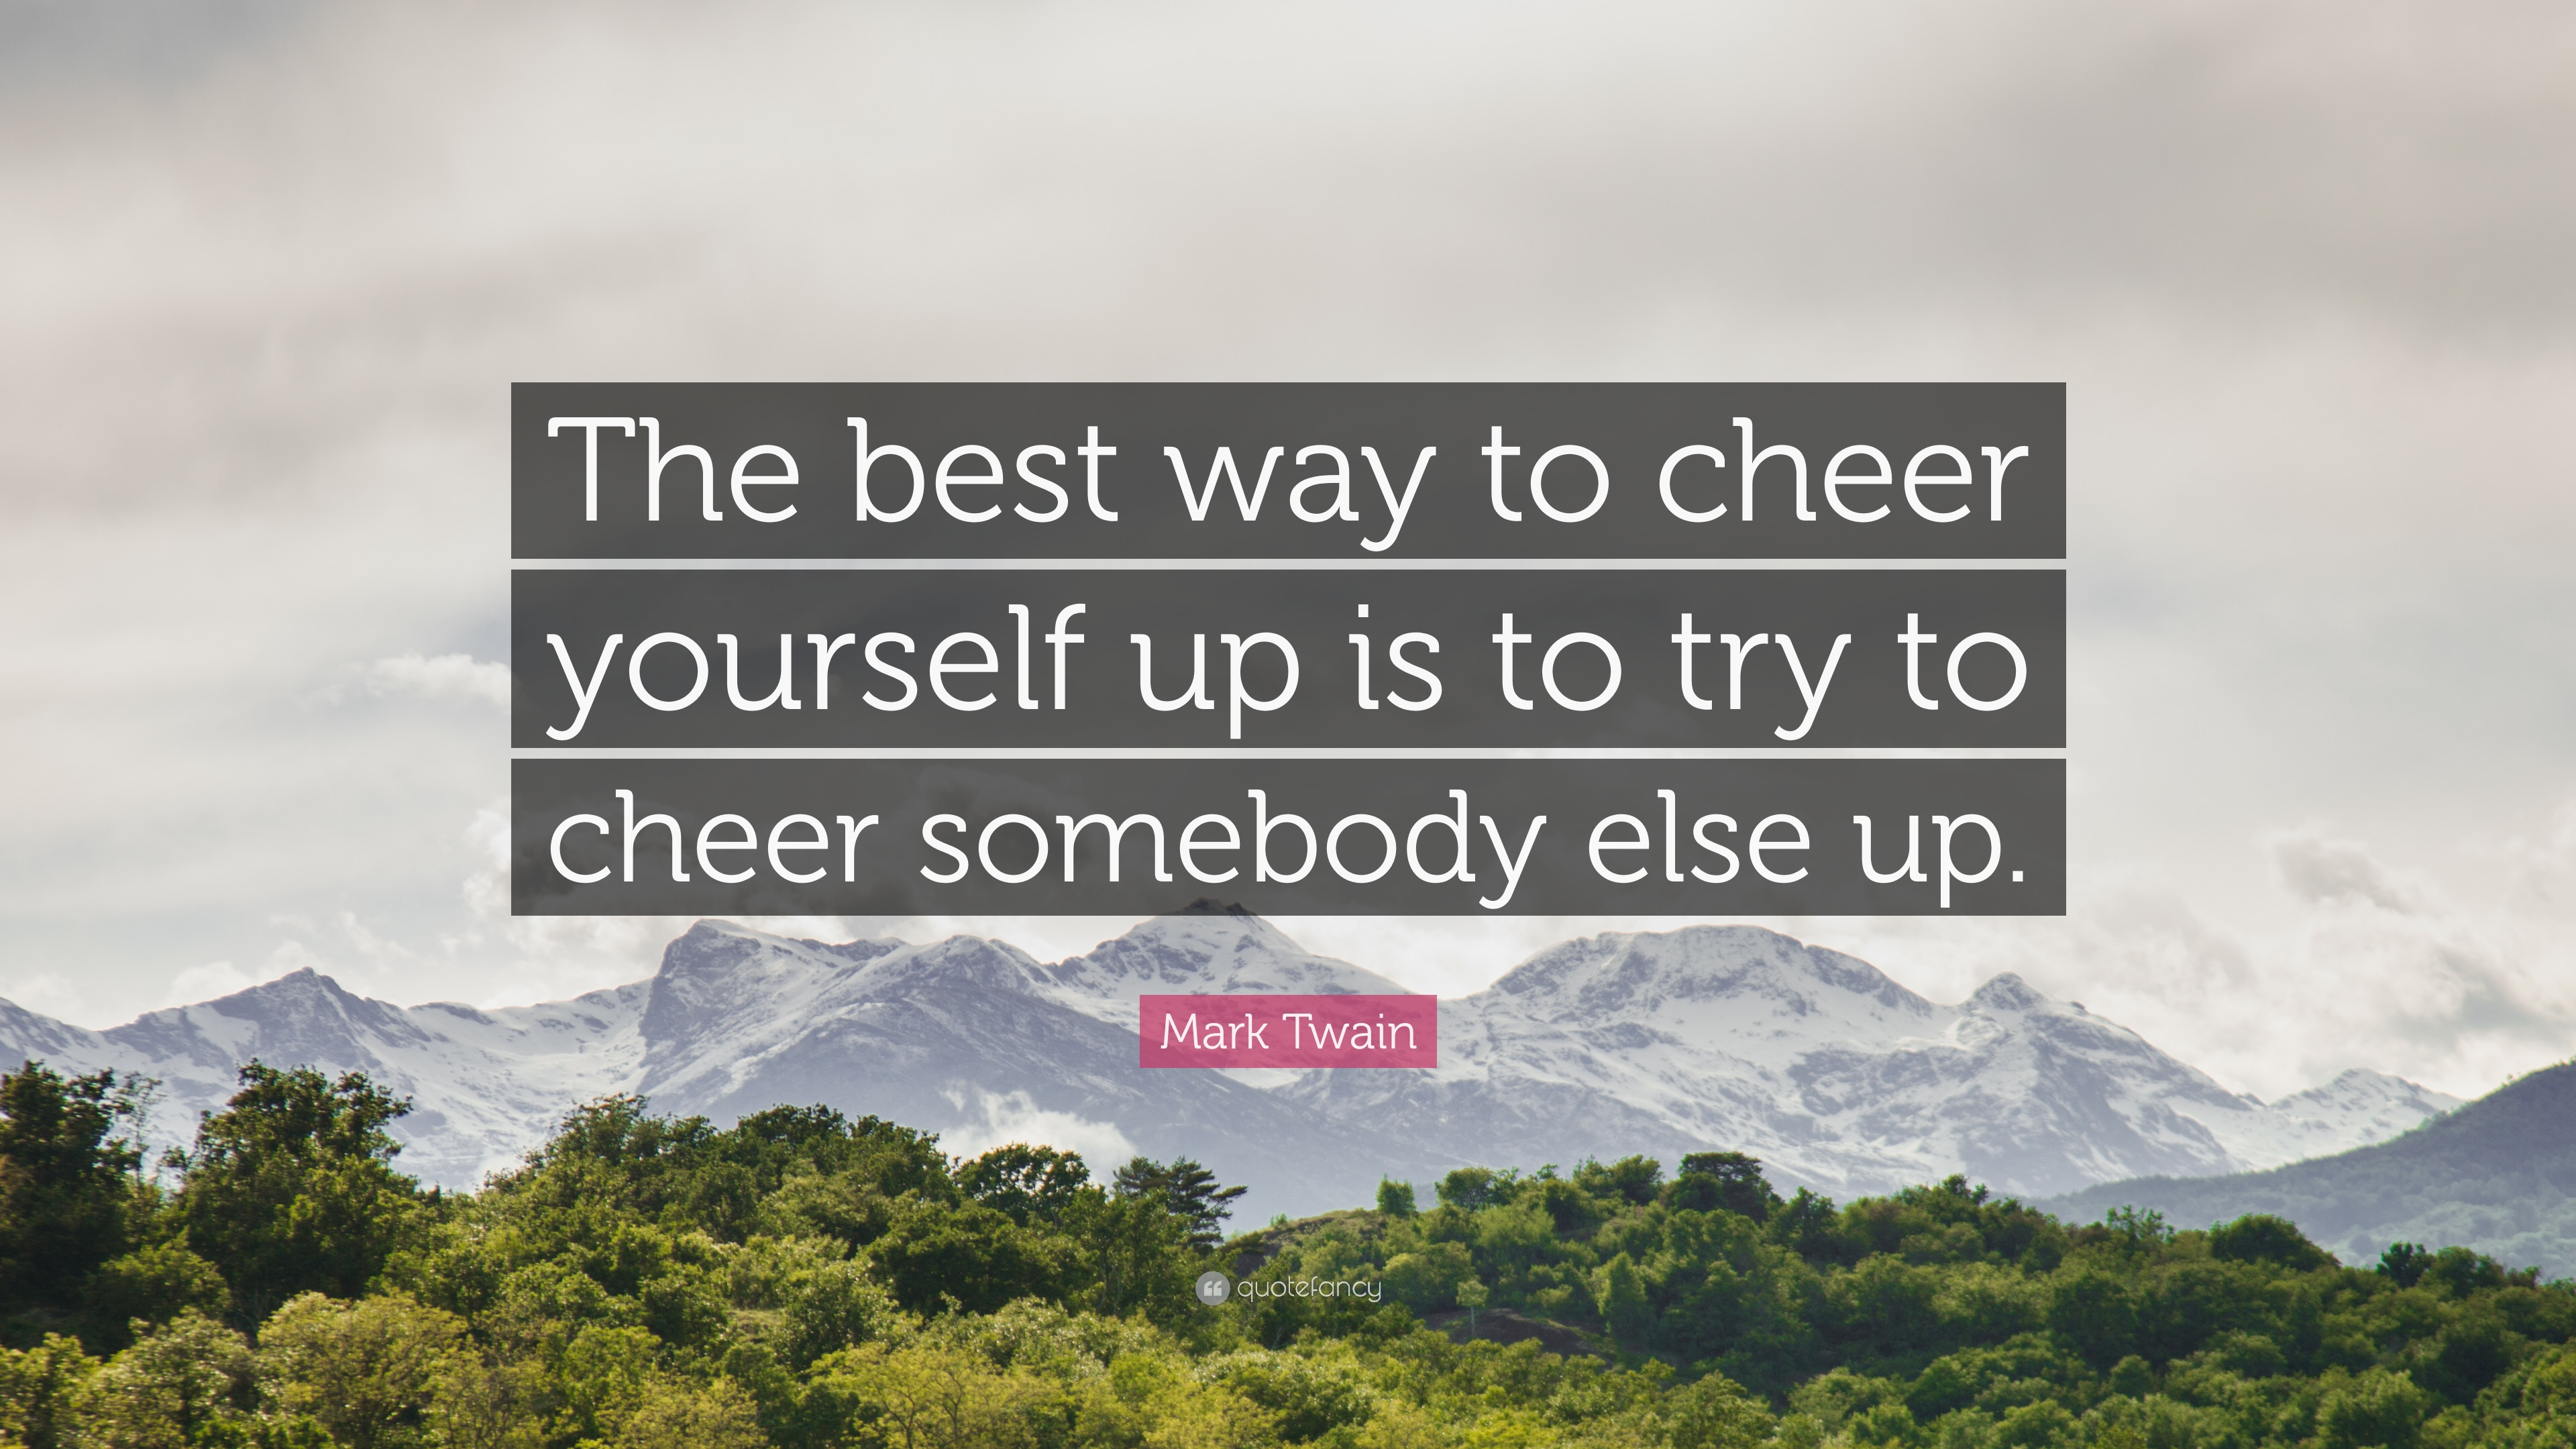 Mark Twain Quote The Best Way To Cheer Yourself Up Is To Try To